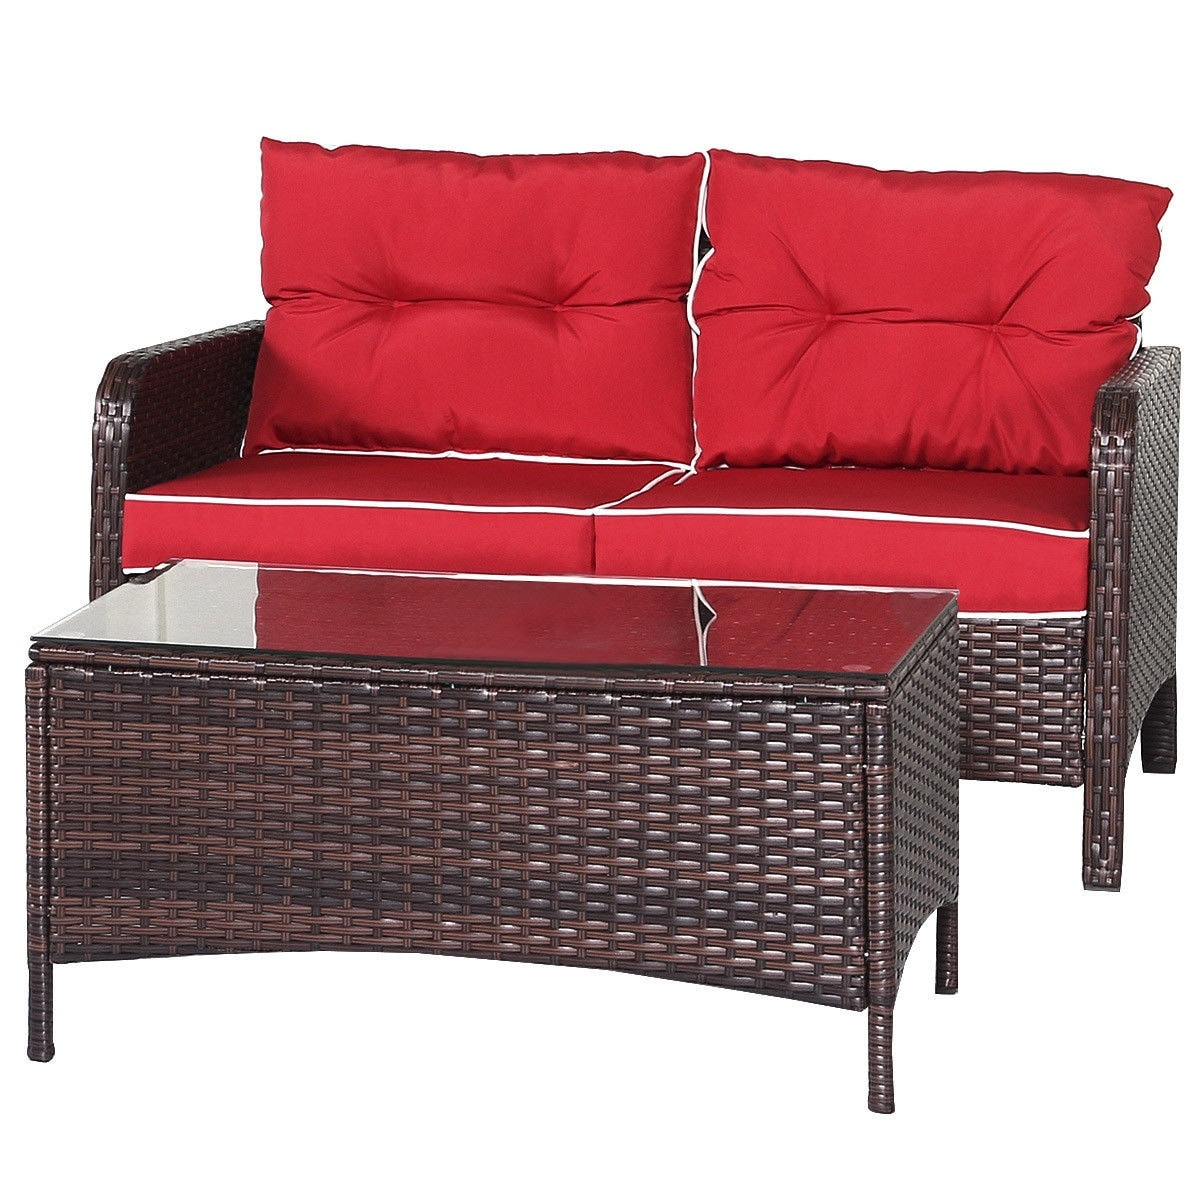 Costway 4 Pcs Outdoor Patio Rattan Wicker Loveseat 2 Single Sofas And 1 Tea Table As Pic Free Shipping Today 16637741